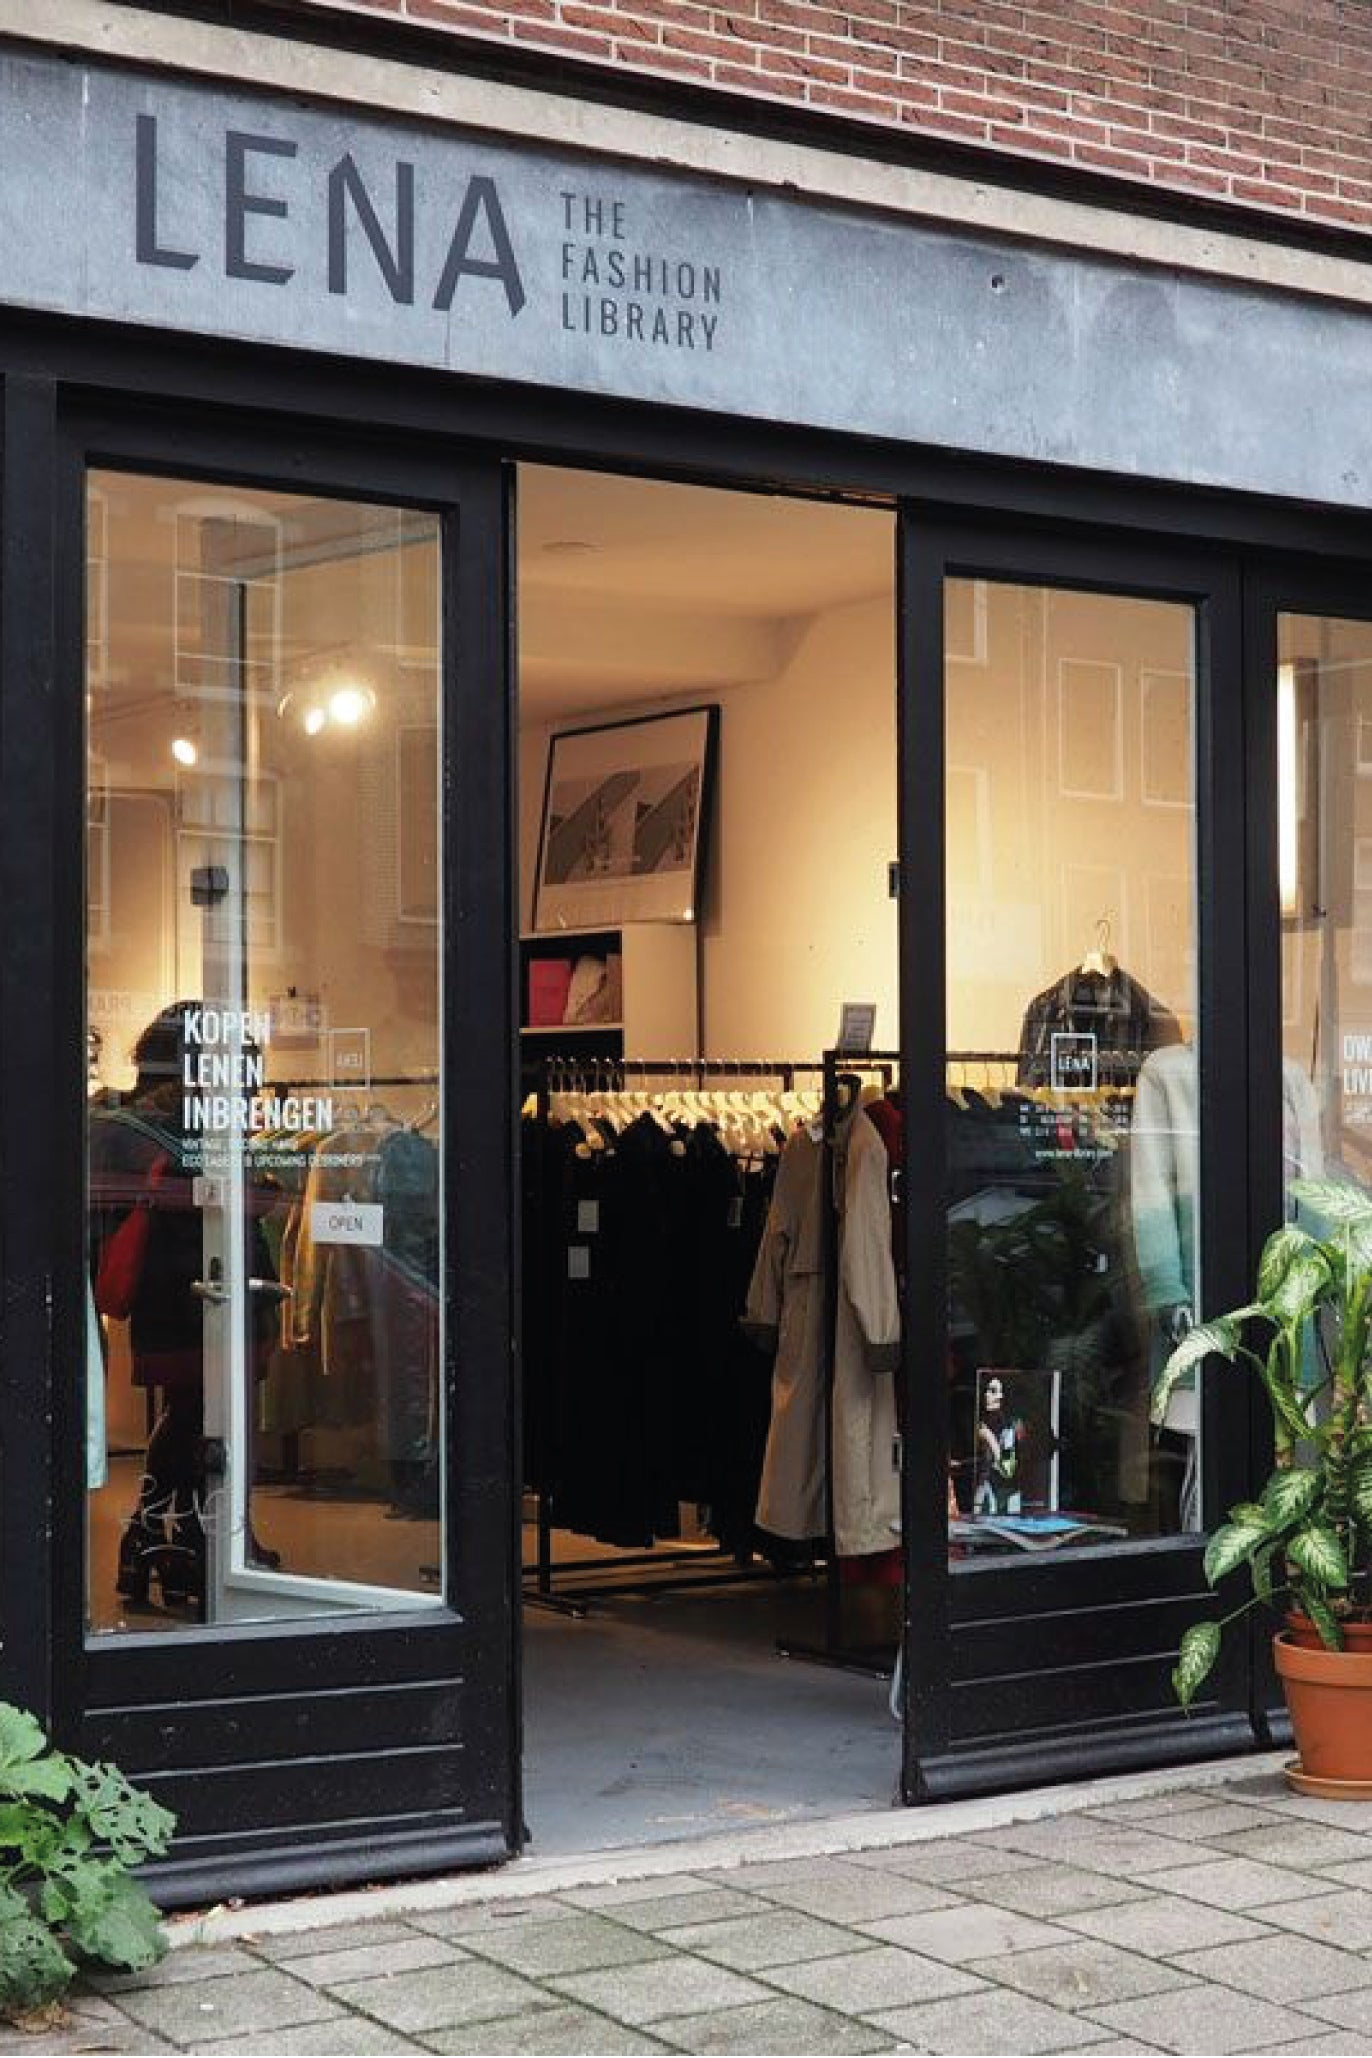 Westerstraat 174 in Amsterdam, Lena library for clothing rental